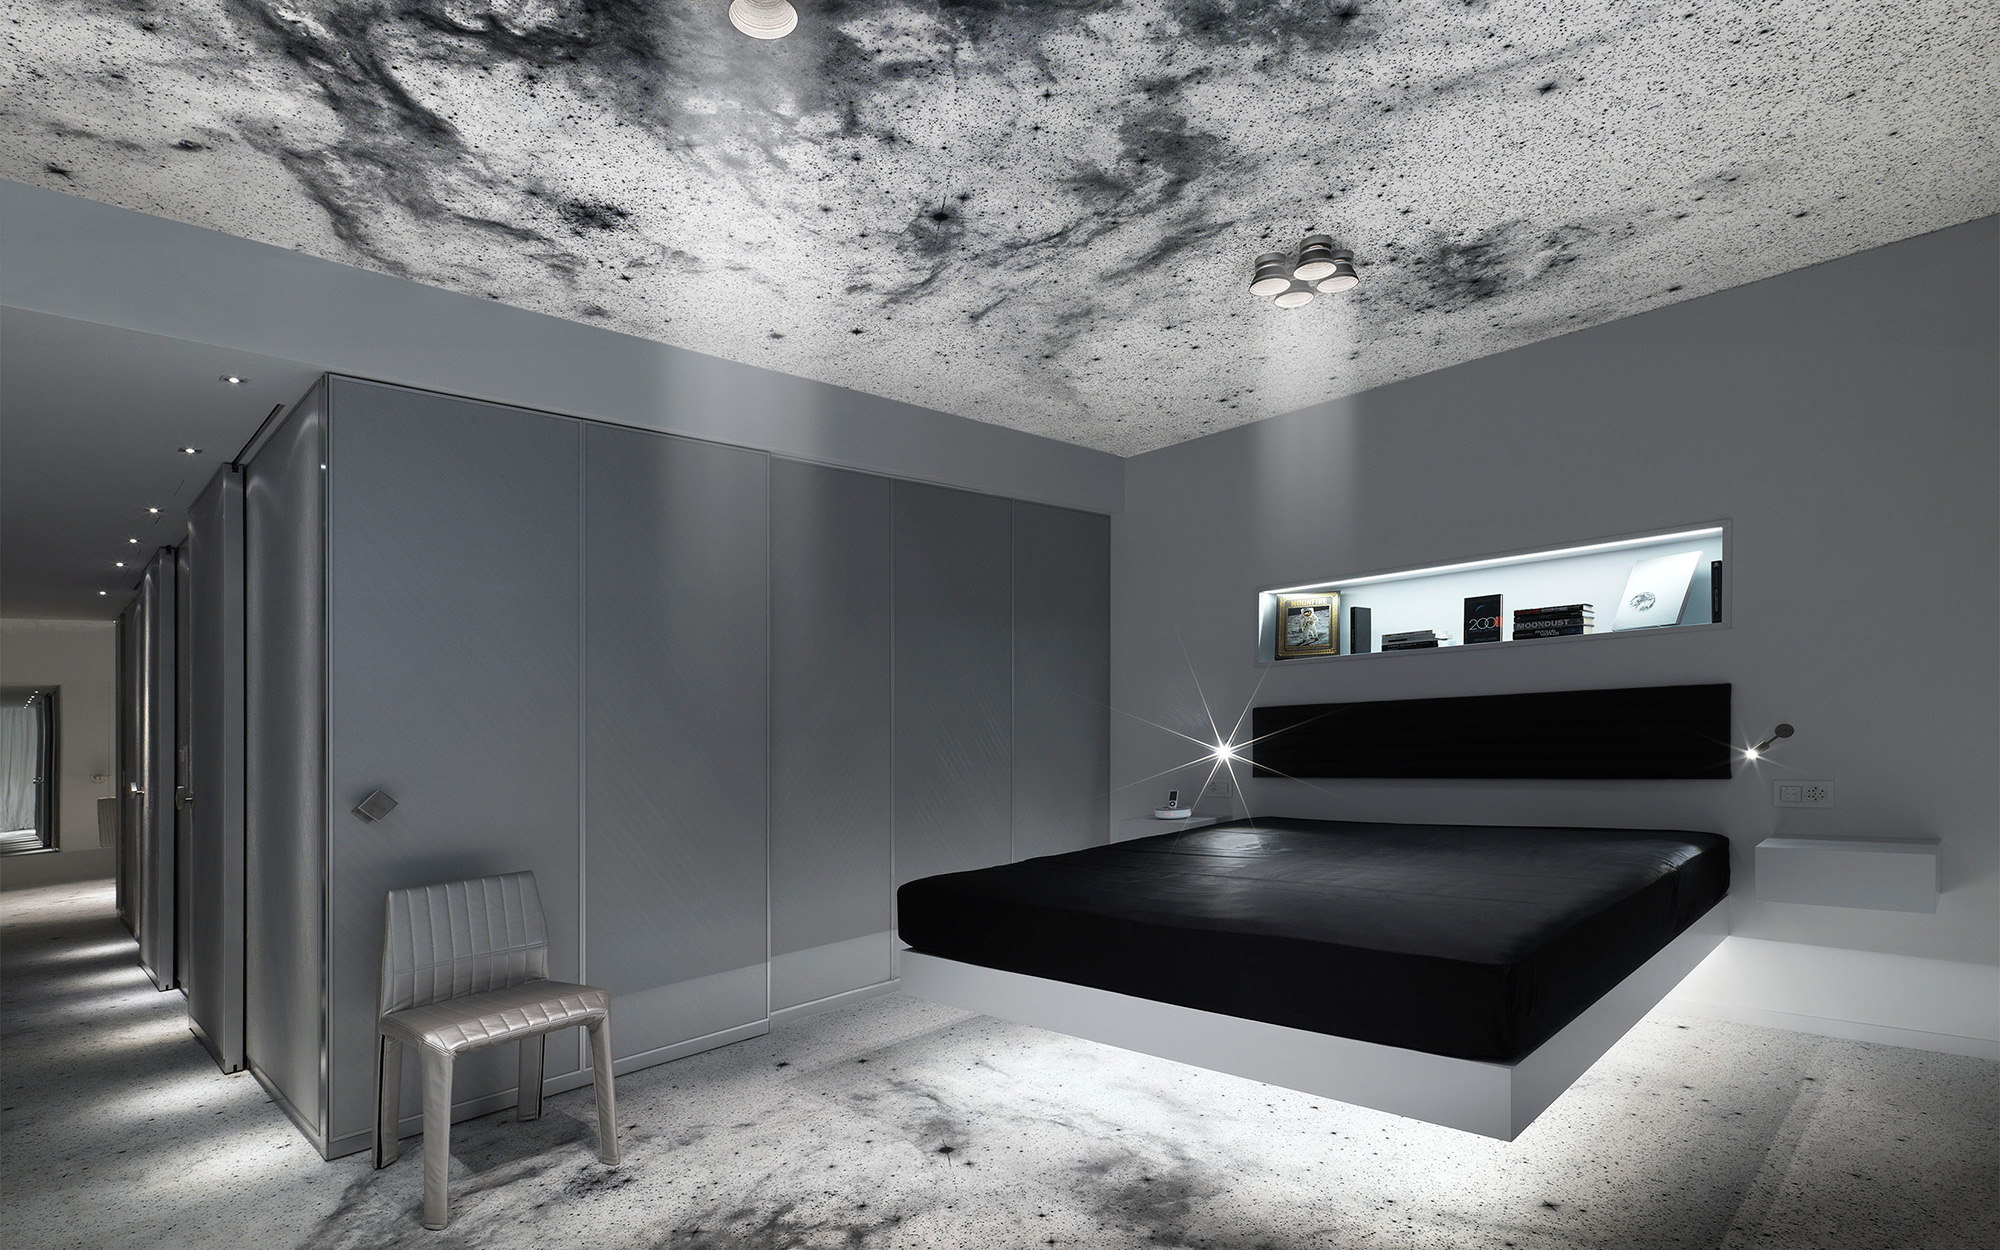 Seven Space-themed Hotels That Are Out of This World